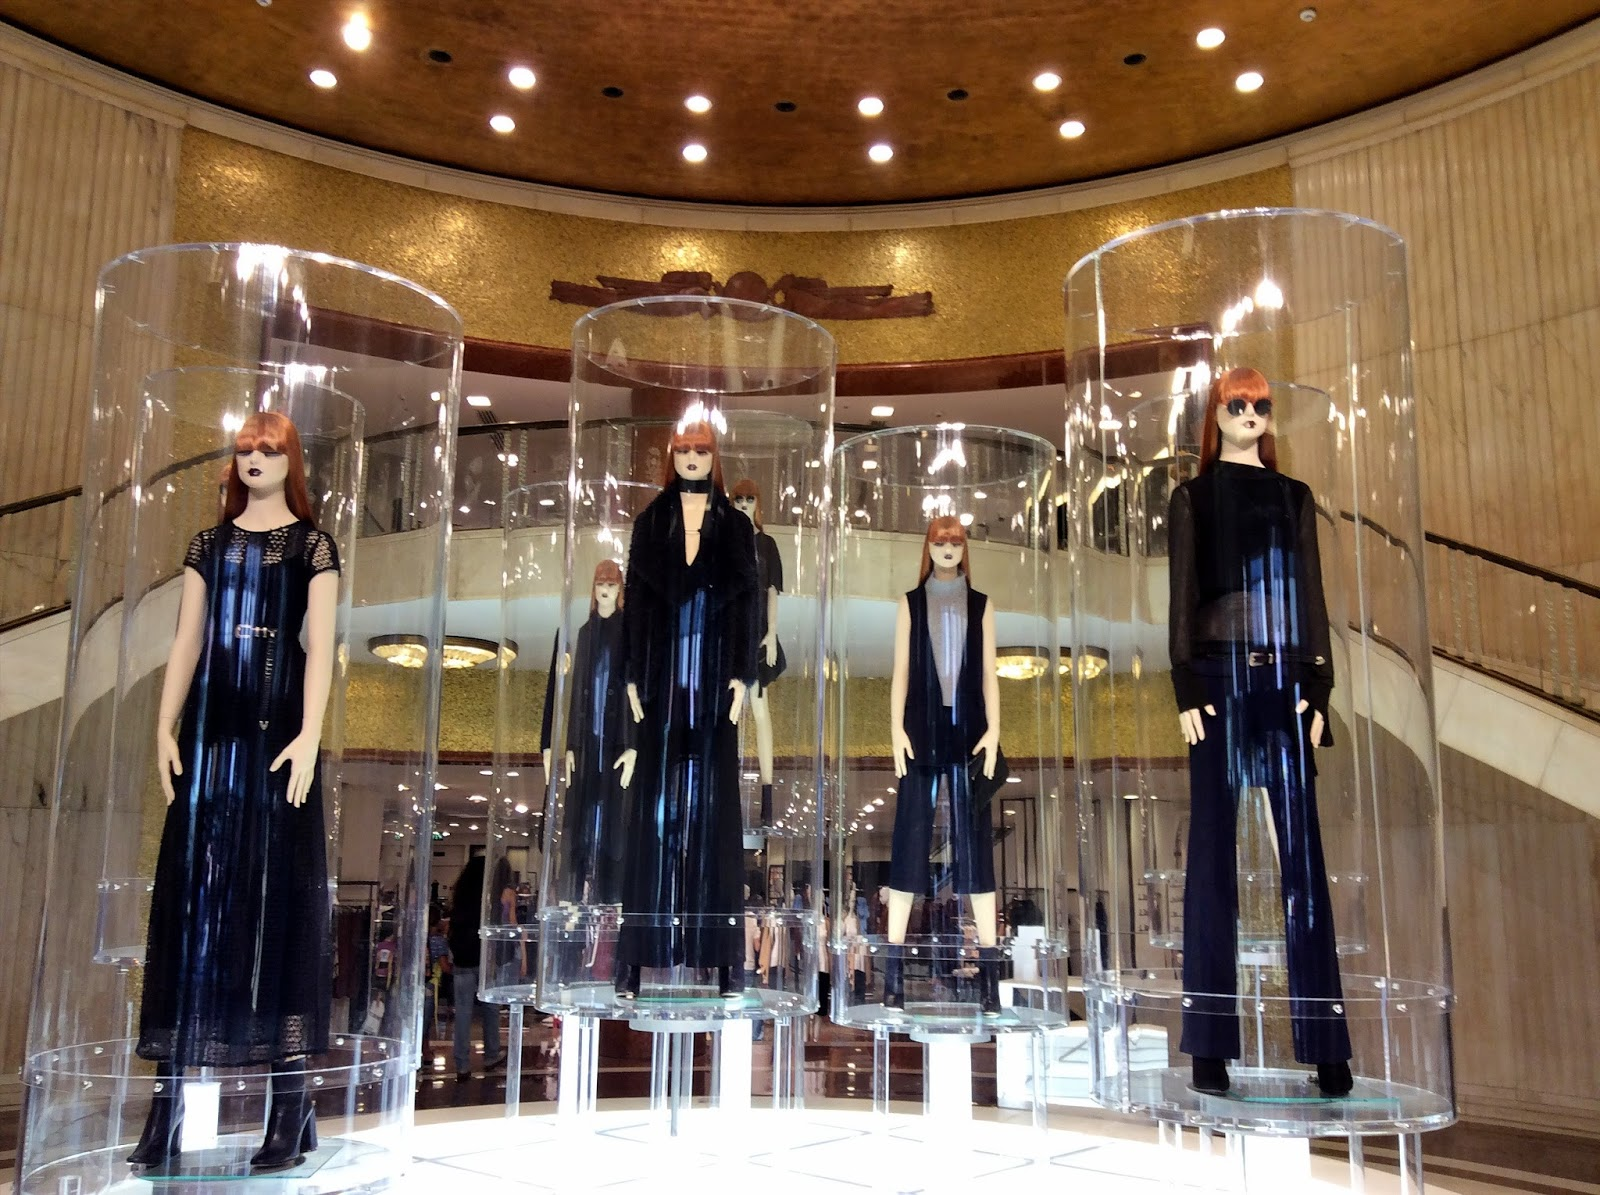 Zara & Bershka in Milan – see how it looks